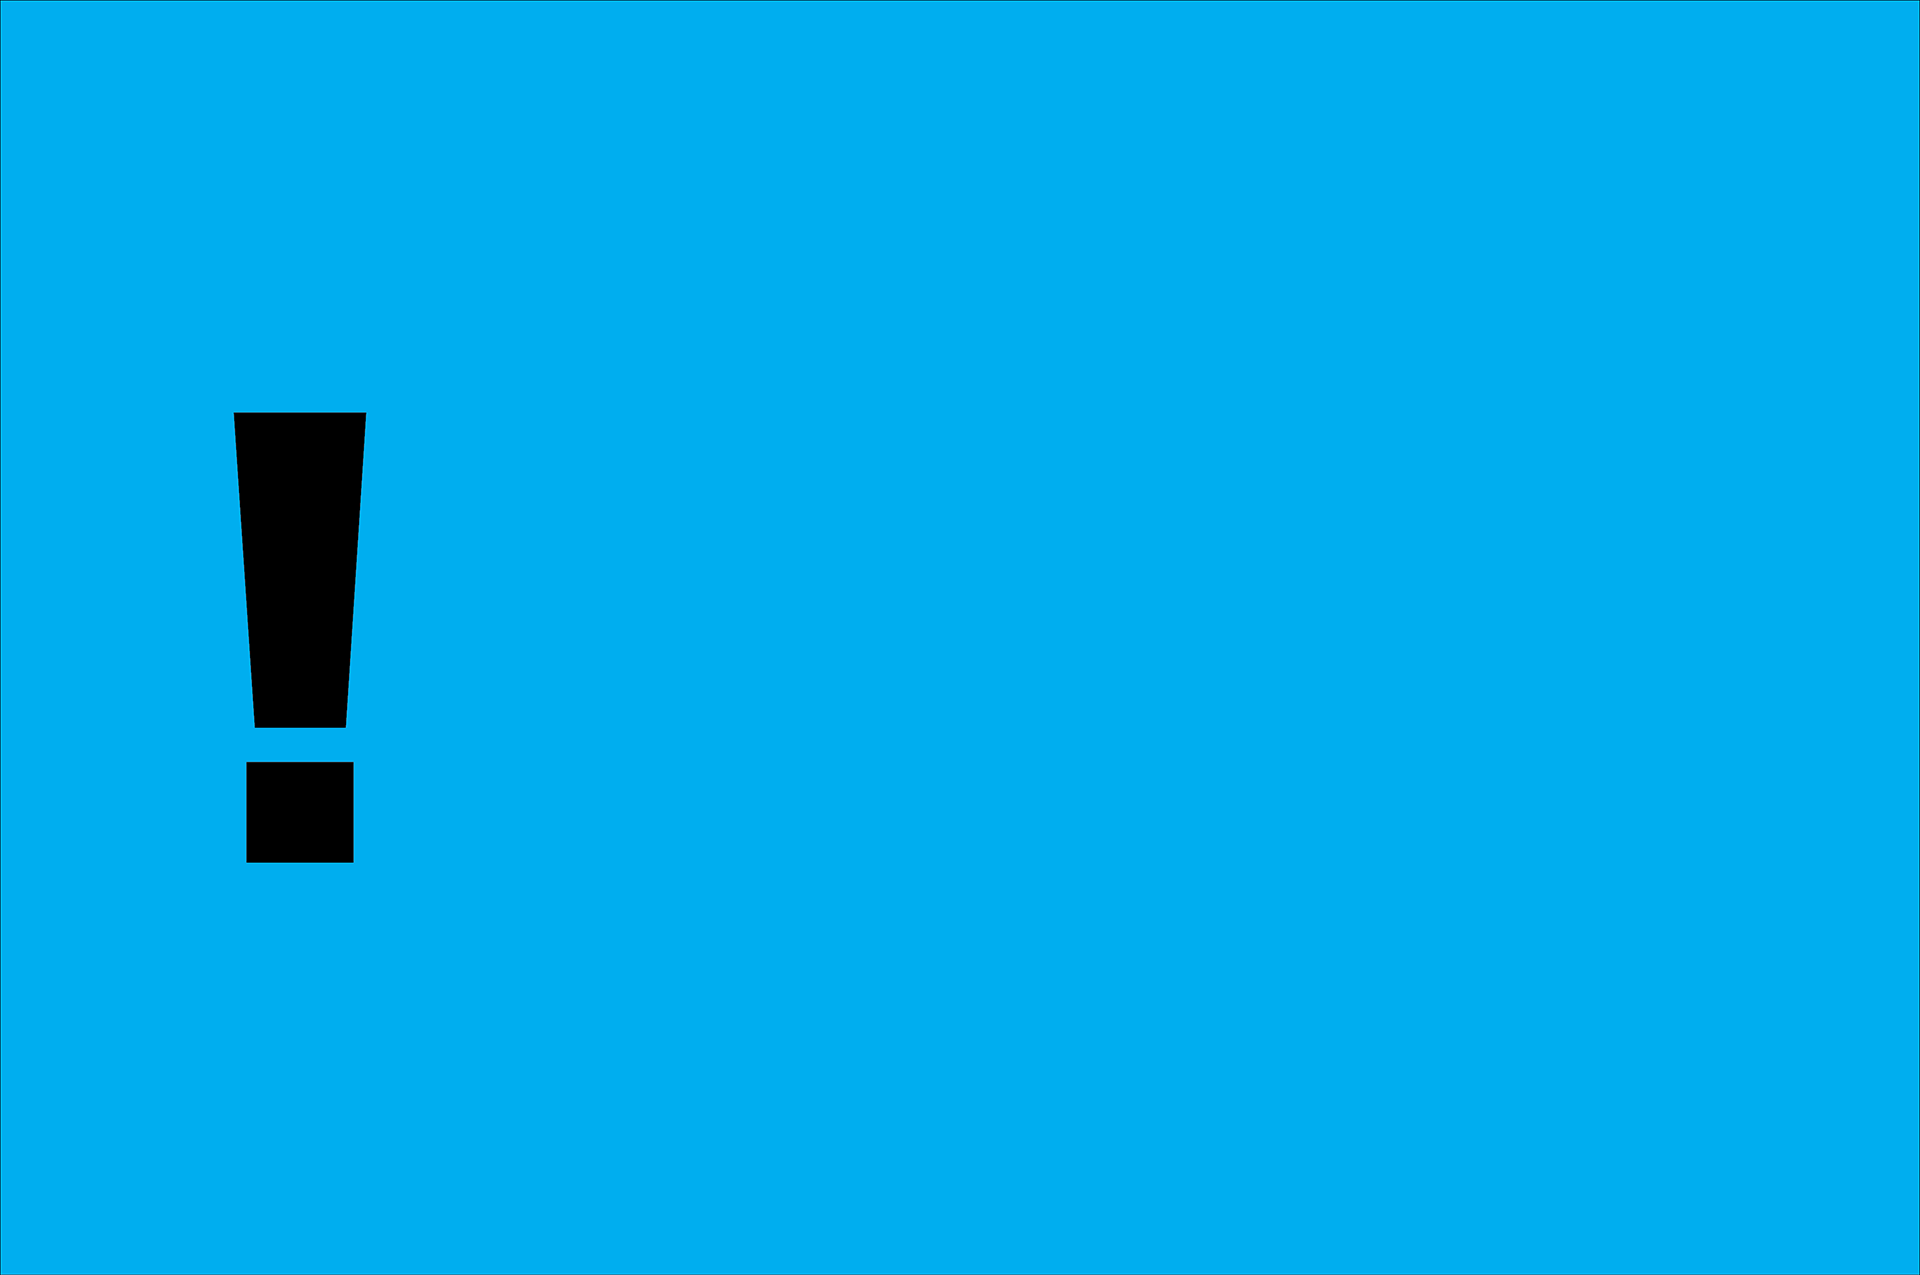 Banner, blue background with a large exclamation mark.